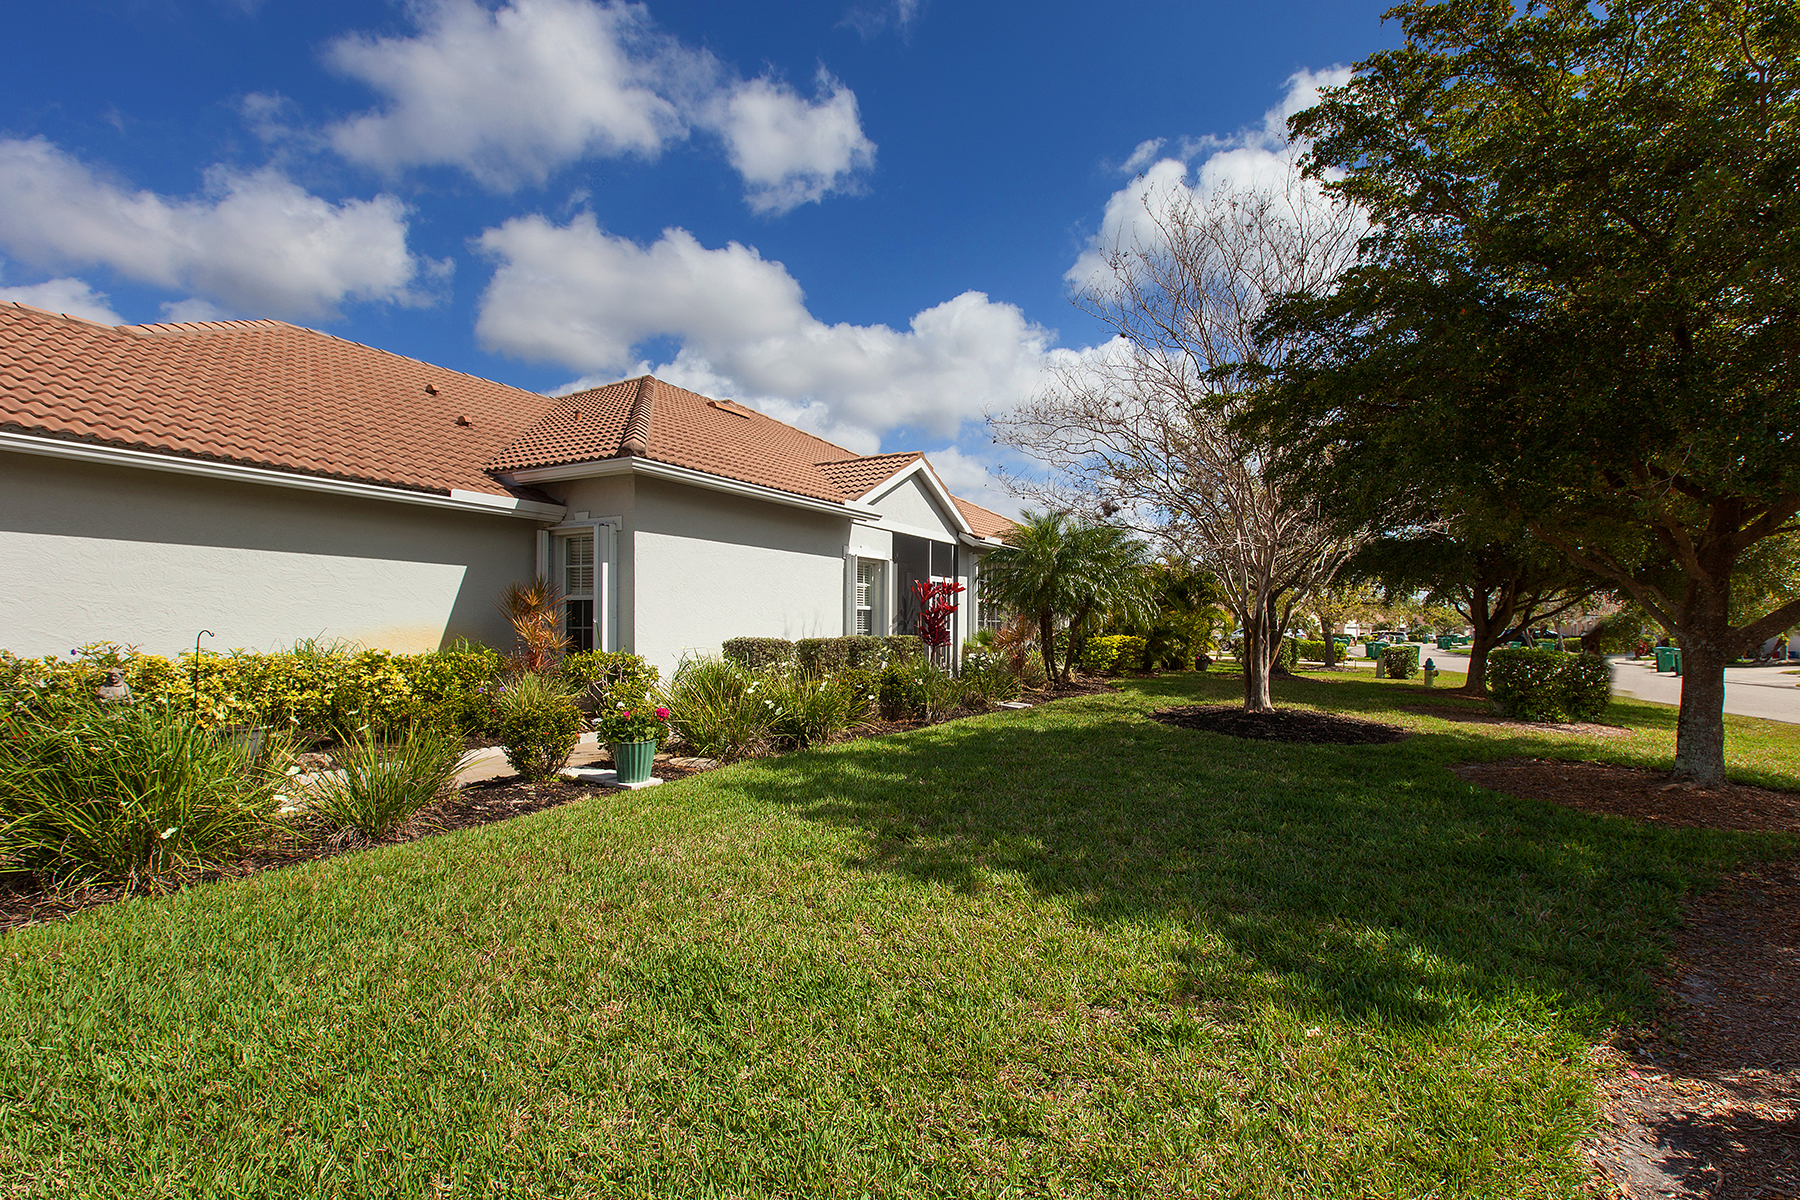 Townhouse for Sale at PELICAN POINTE GOLF & COUNTRY CLUB 1922 San Silvestro Dr, Venice, Florida 34285 United States